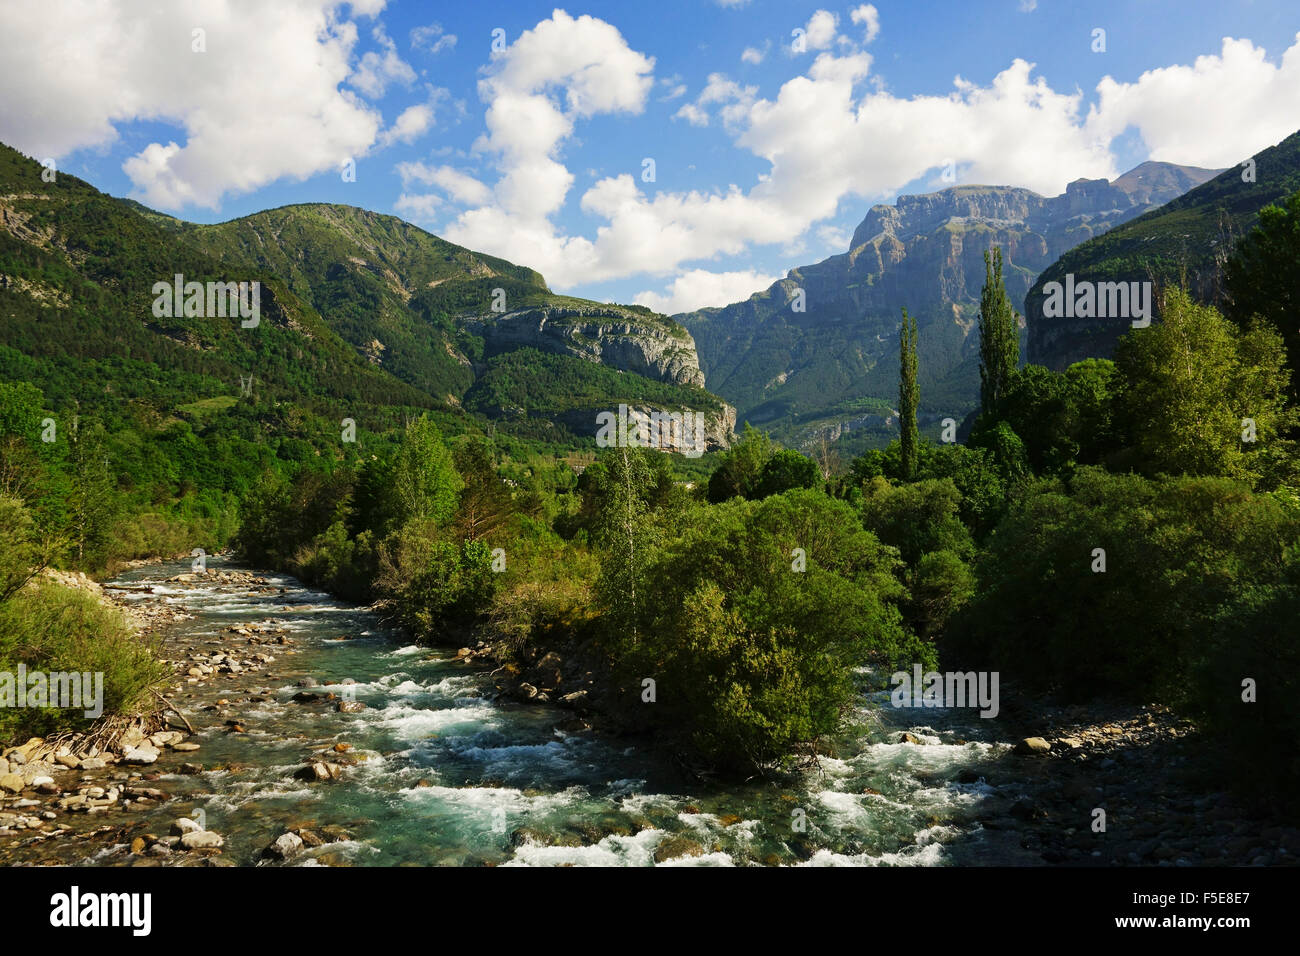 Valle de Broto, Parque Nacional de Ordesa, Central Pyrenees, Aragon, Spain, Europe - Stock Image